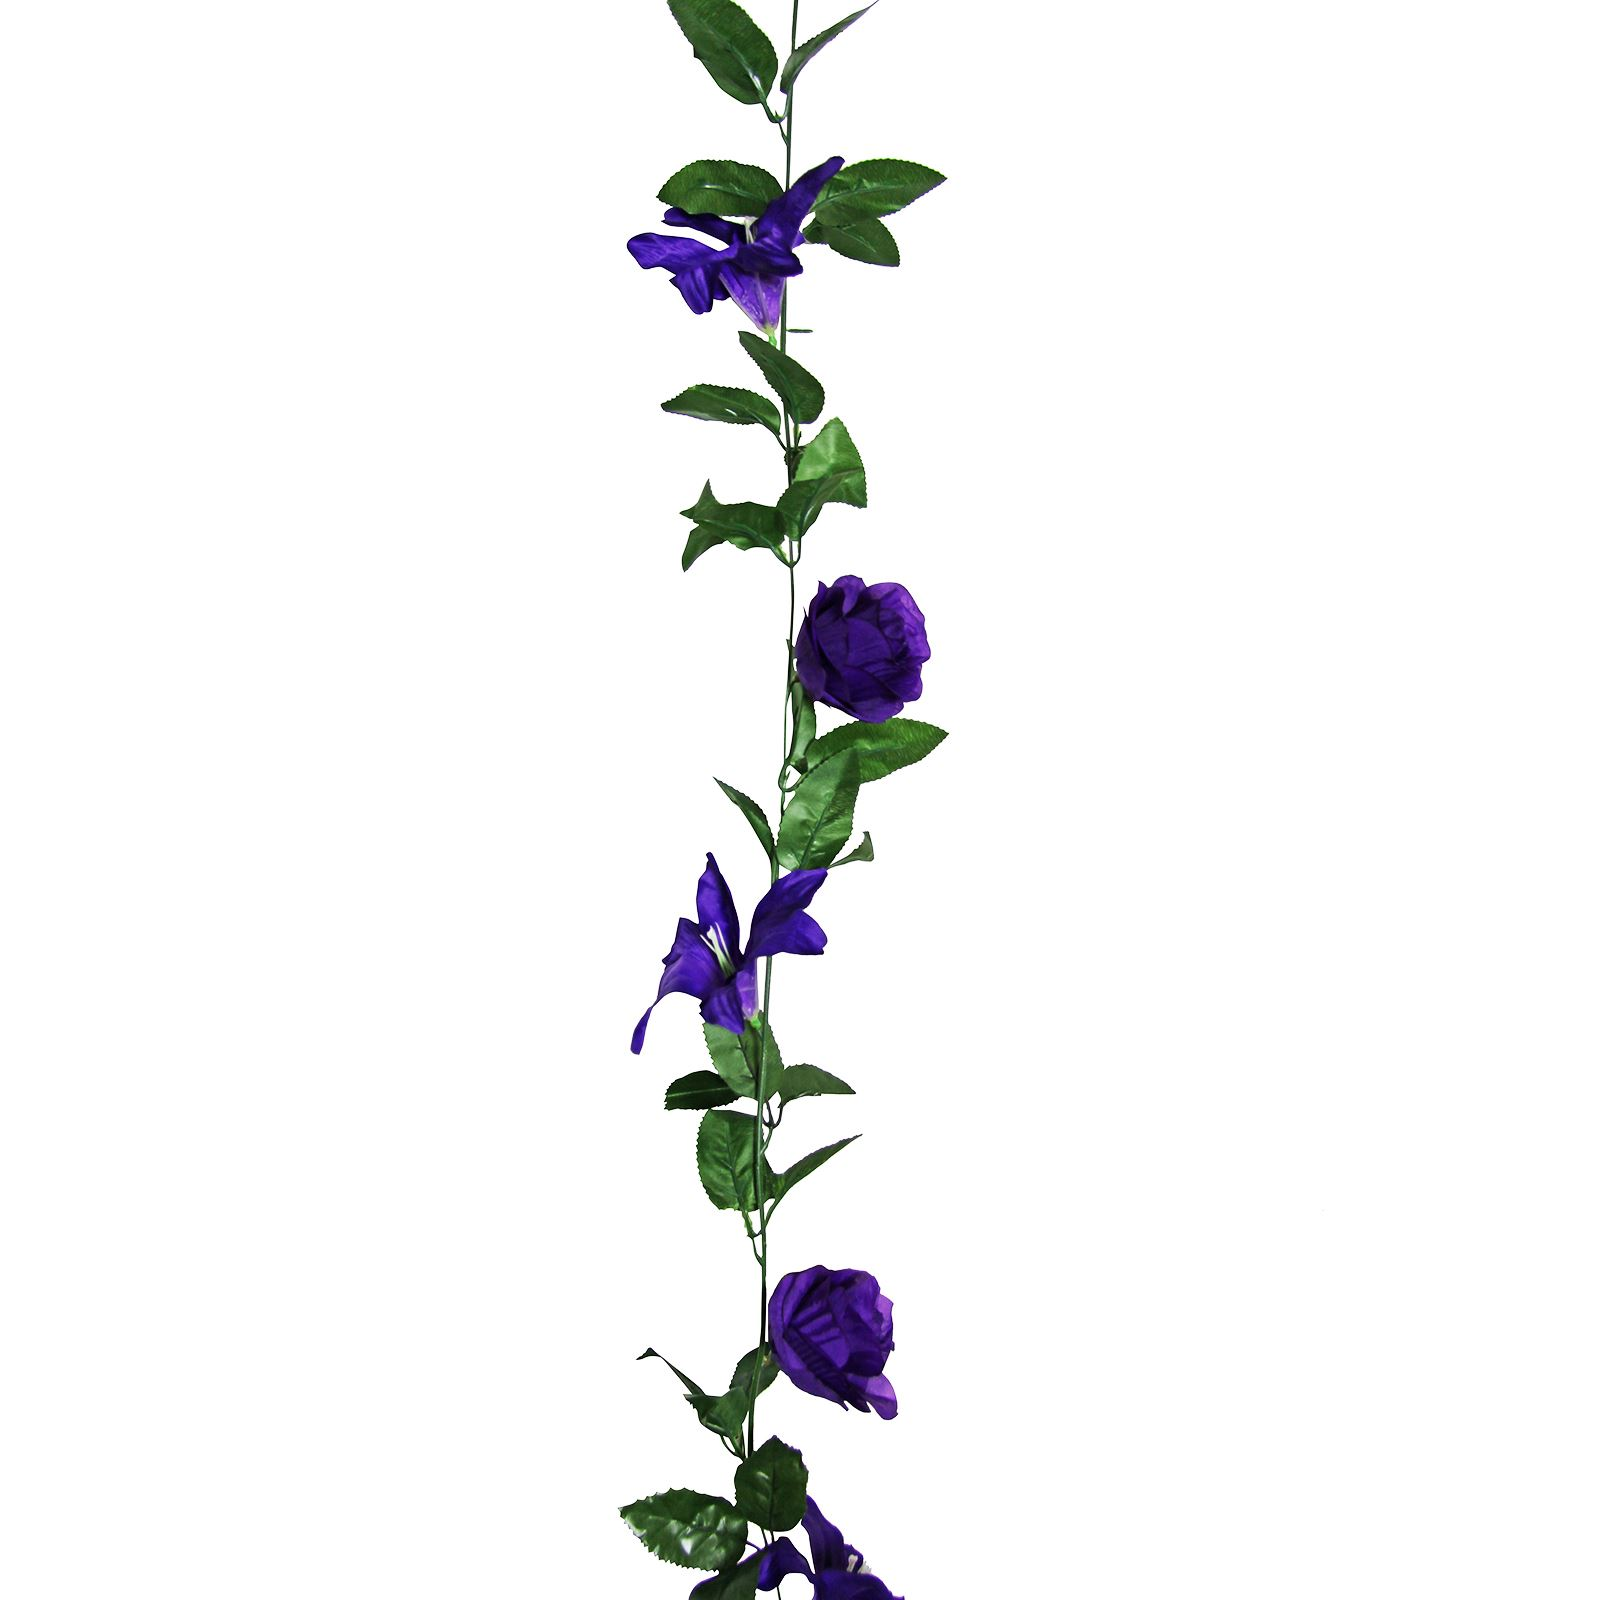 Flower Garland: Rose And Lily Flower Garland! Artificial Fake Flowers Vine